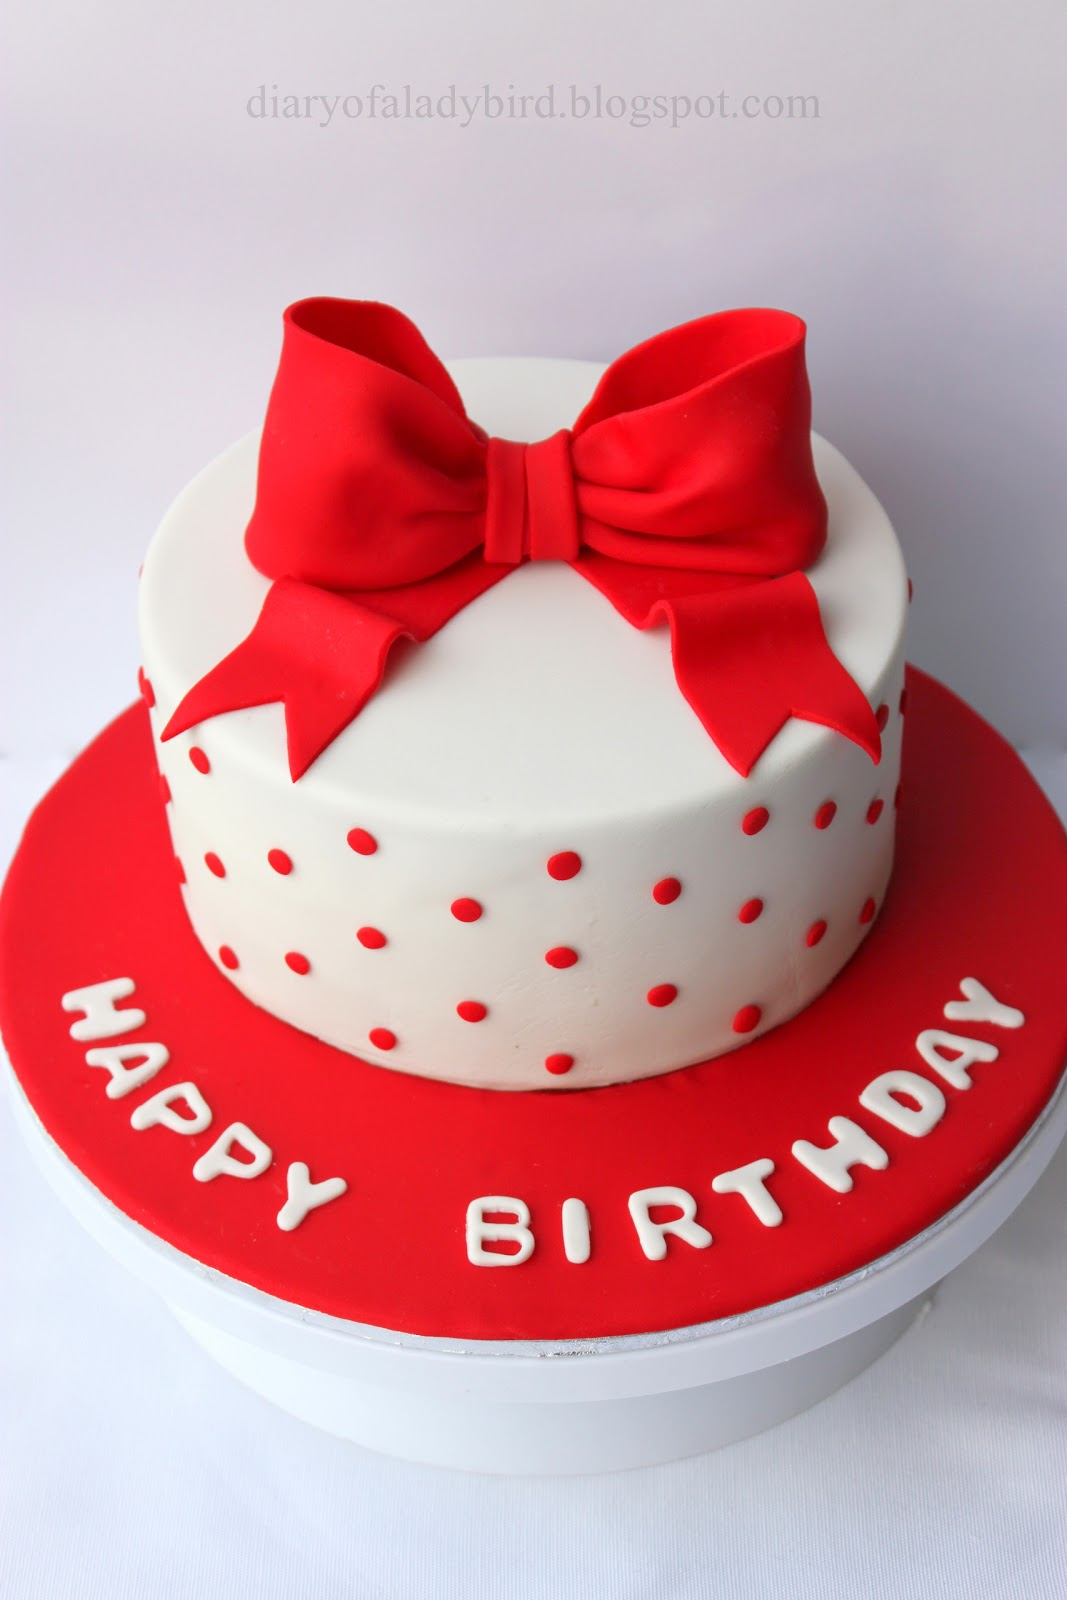 Diary Of A Ladybird The Joy Of Creating Birthday Cakes